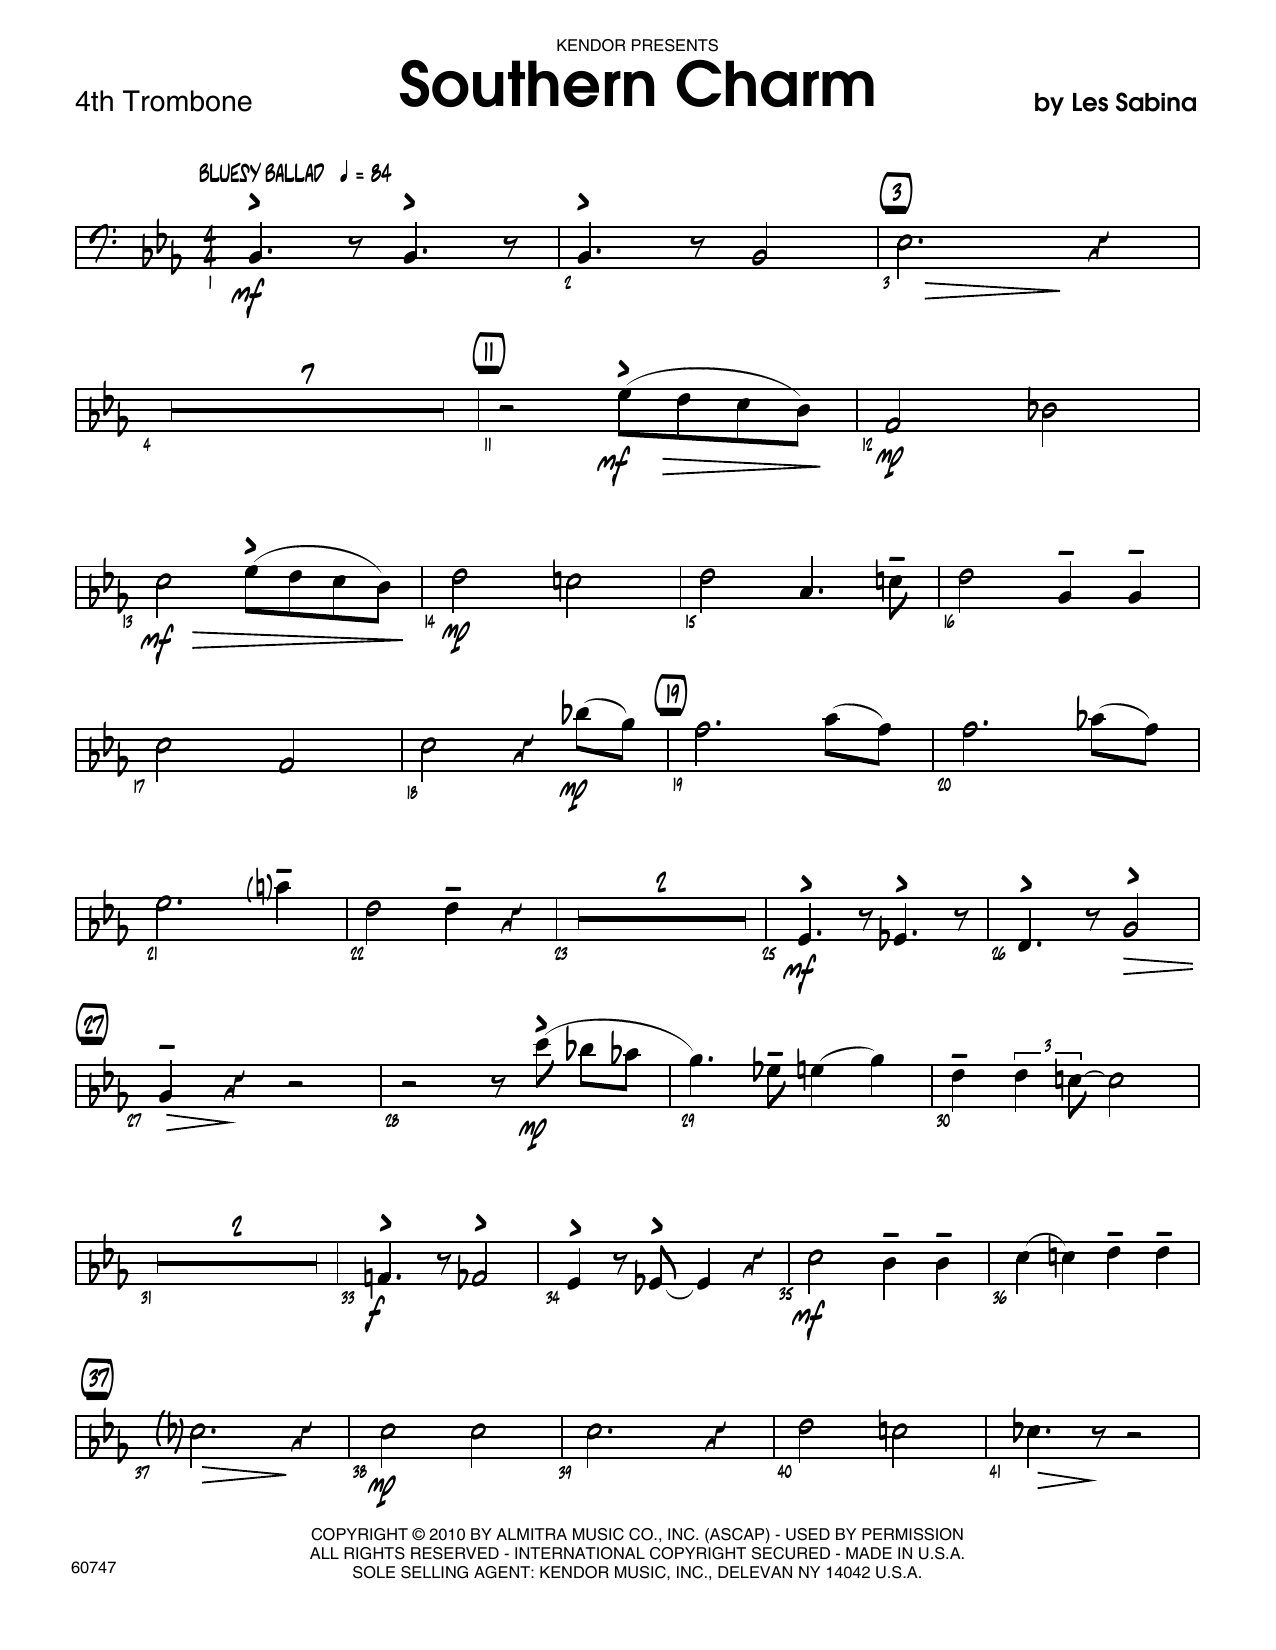 Southern Charm - 4th Trombone Sheet Music